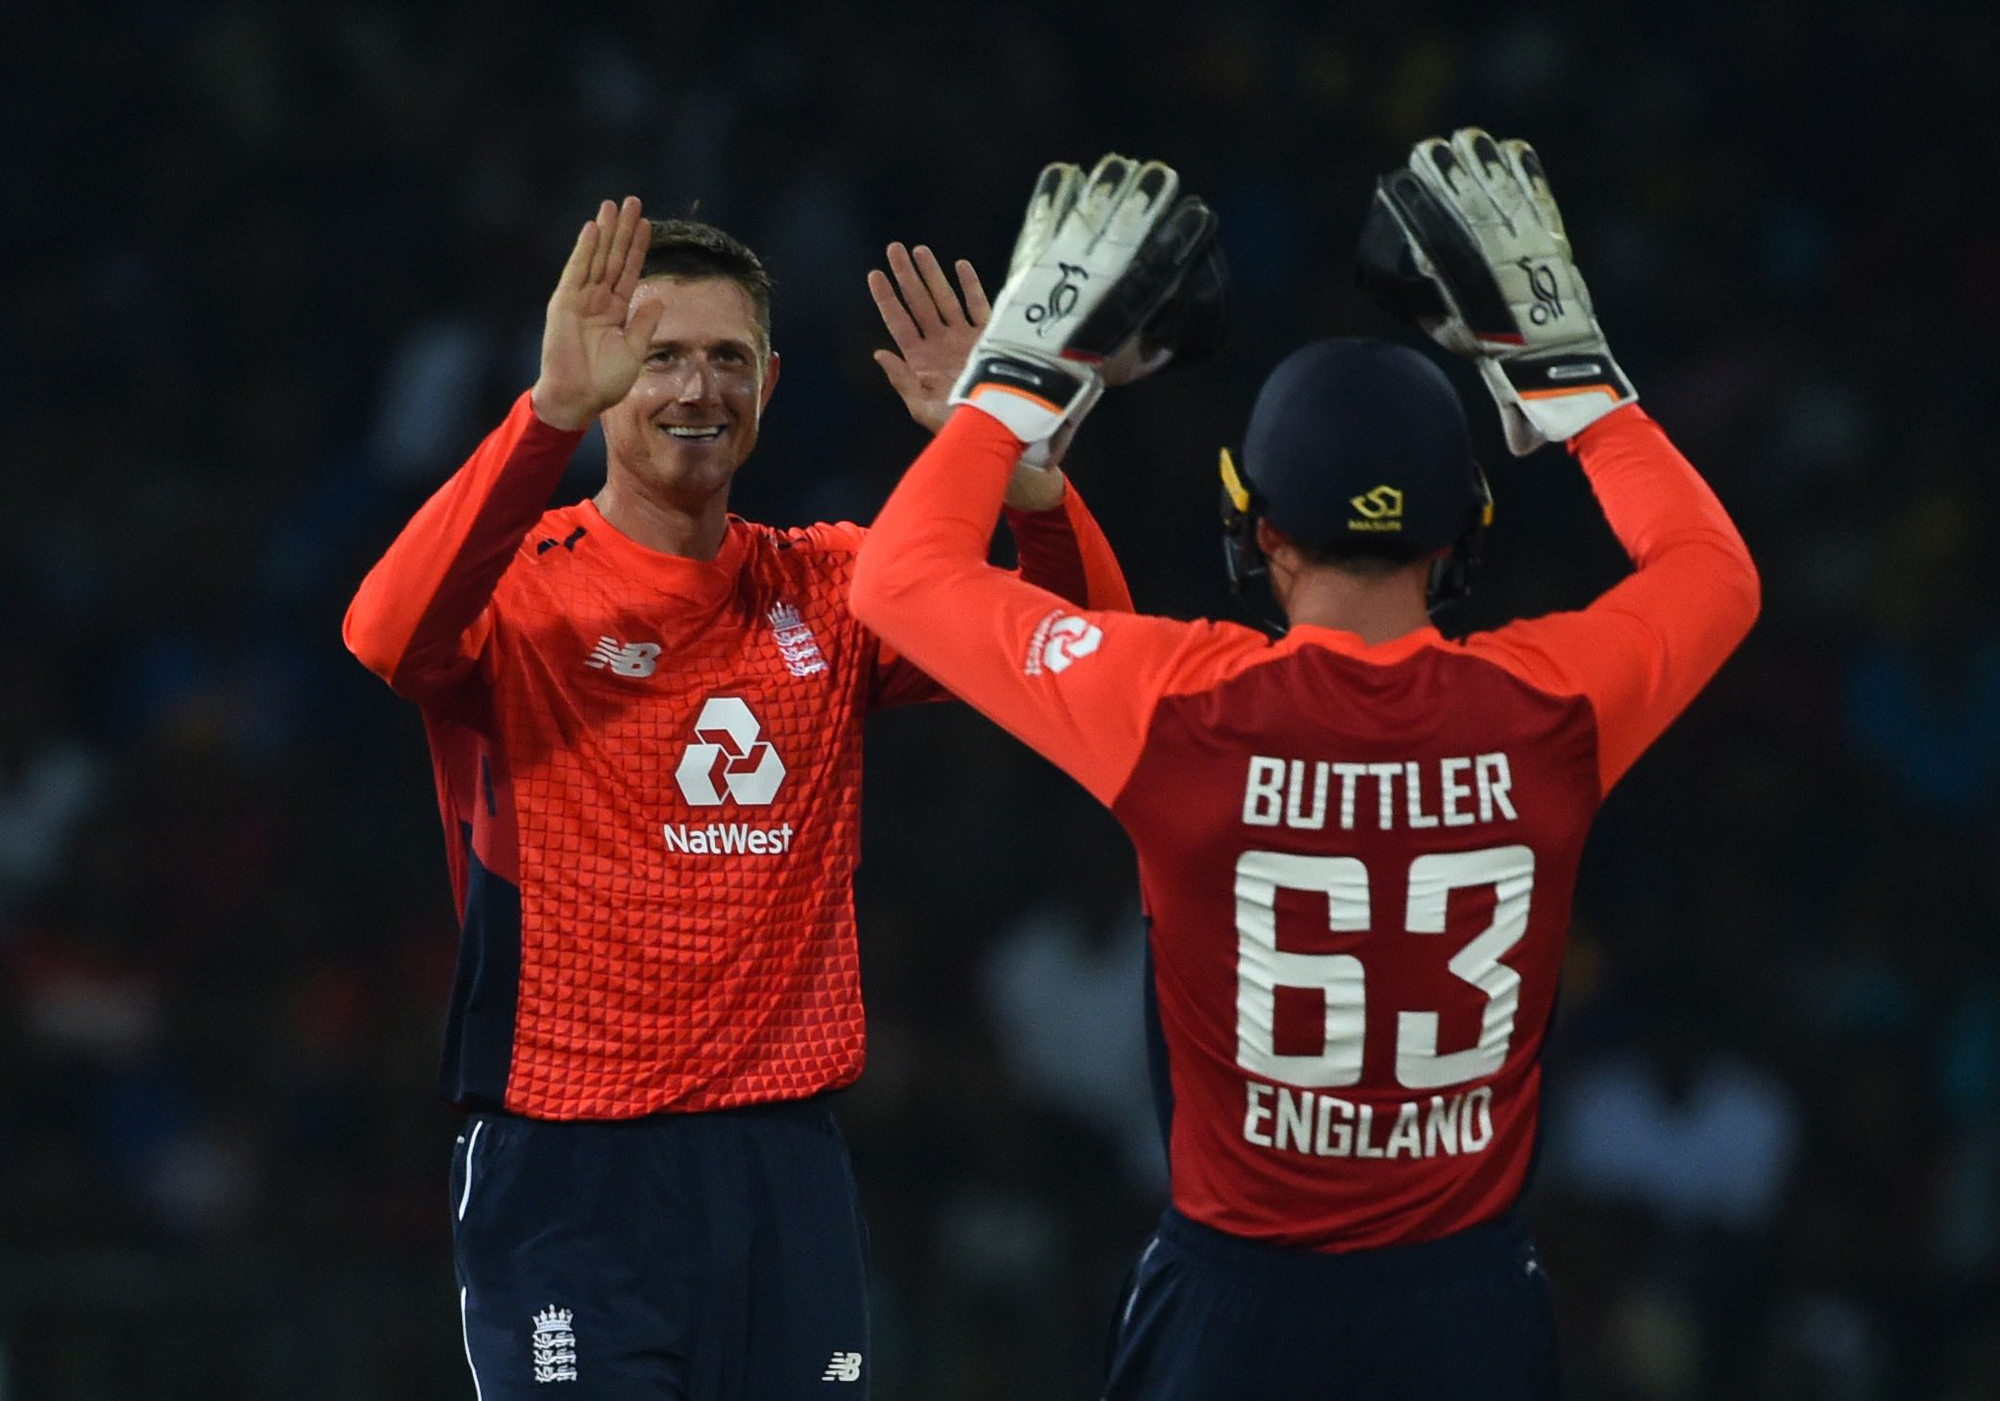 England's bowler Joe Denly (L) celebrates with England's wicketkeeper Jos Buttler after he dismissed Sri Lankan cricketer Niroshan Dickwella during the Twenty20 International cricket match between Sri Lanka and England at the R. Premadasa Stadium in Colom